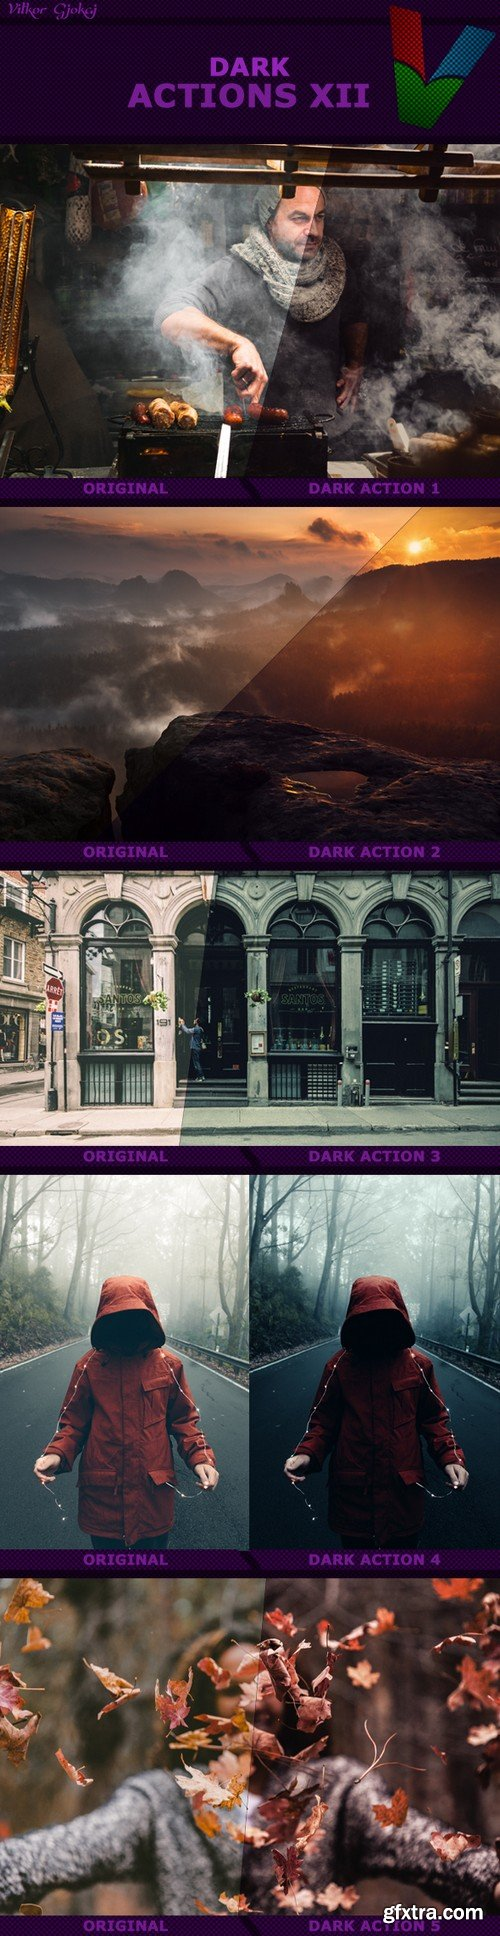 Graphicriver - Dark Actions XII 19165642